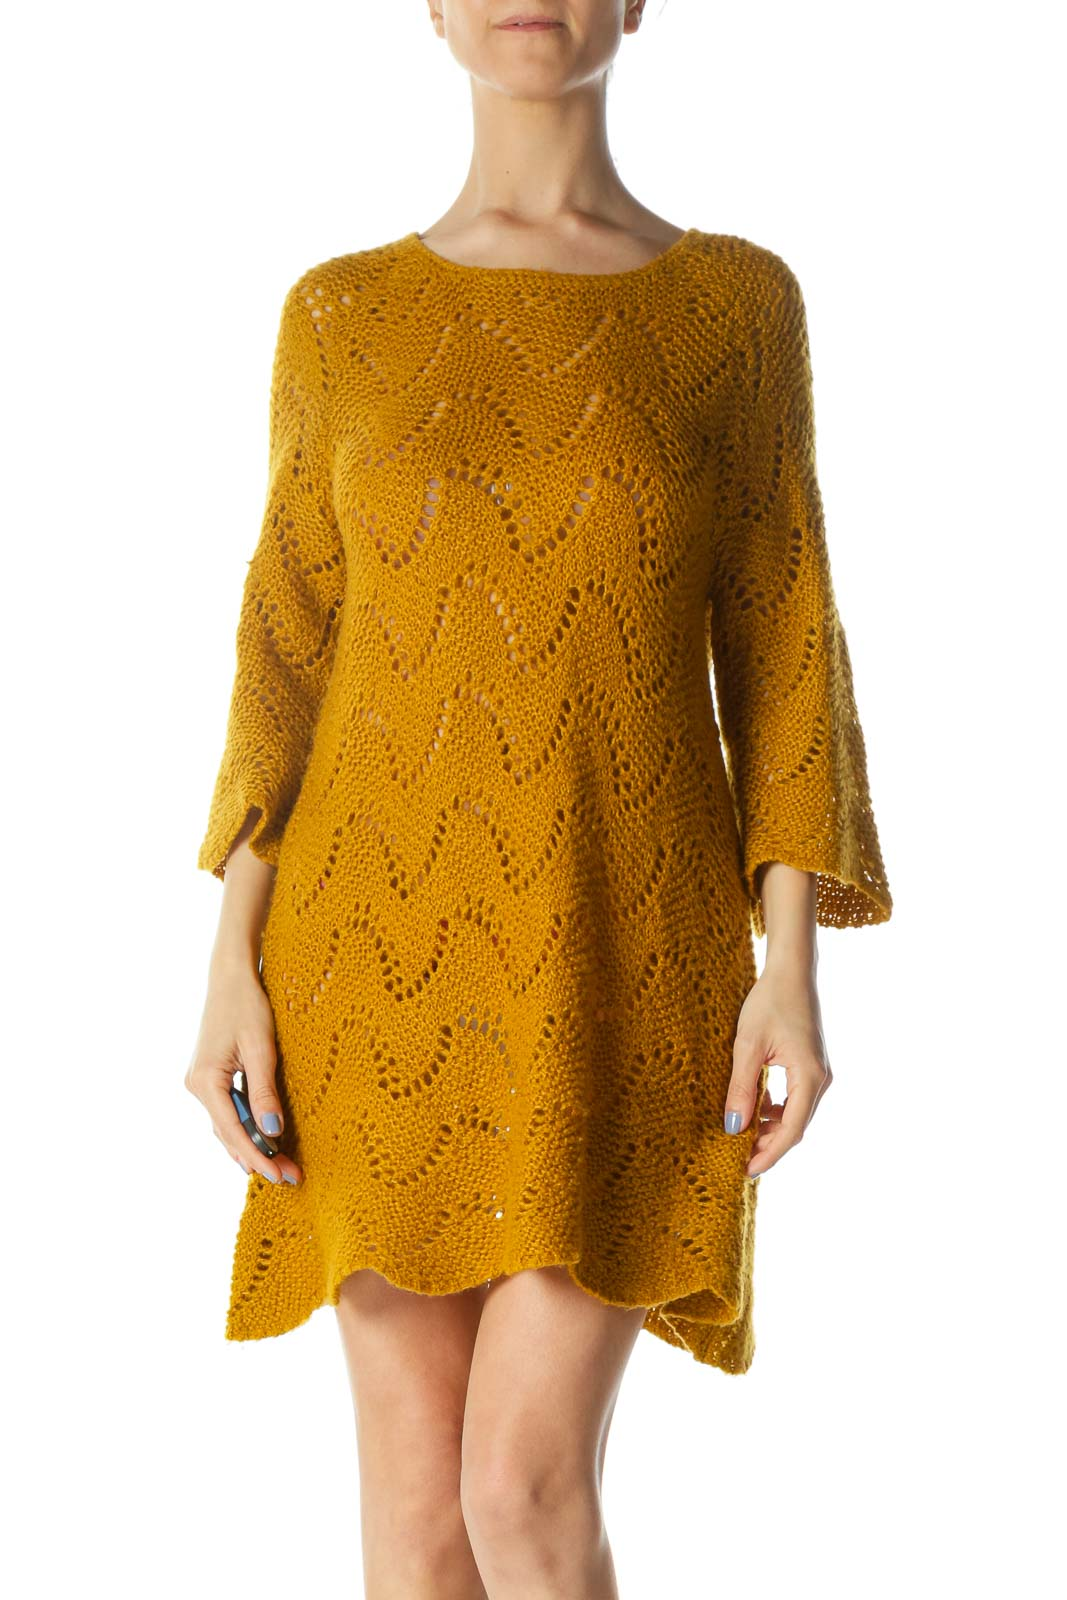 Mustard-Yellow Round-Neck Long-Sleeve Knit See-Through Dress Front